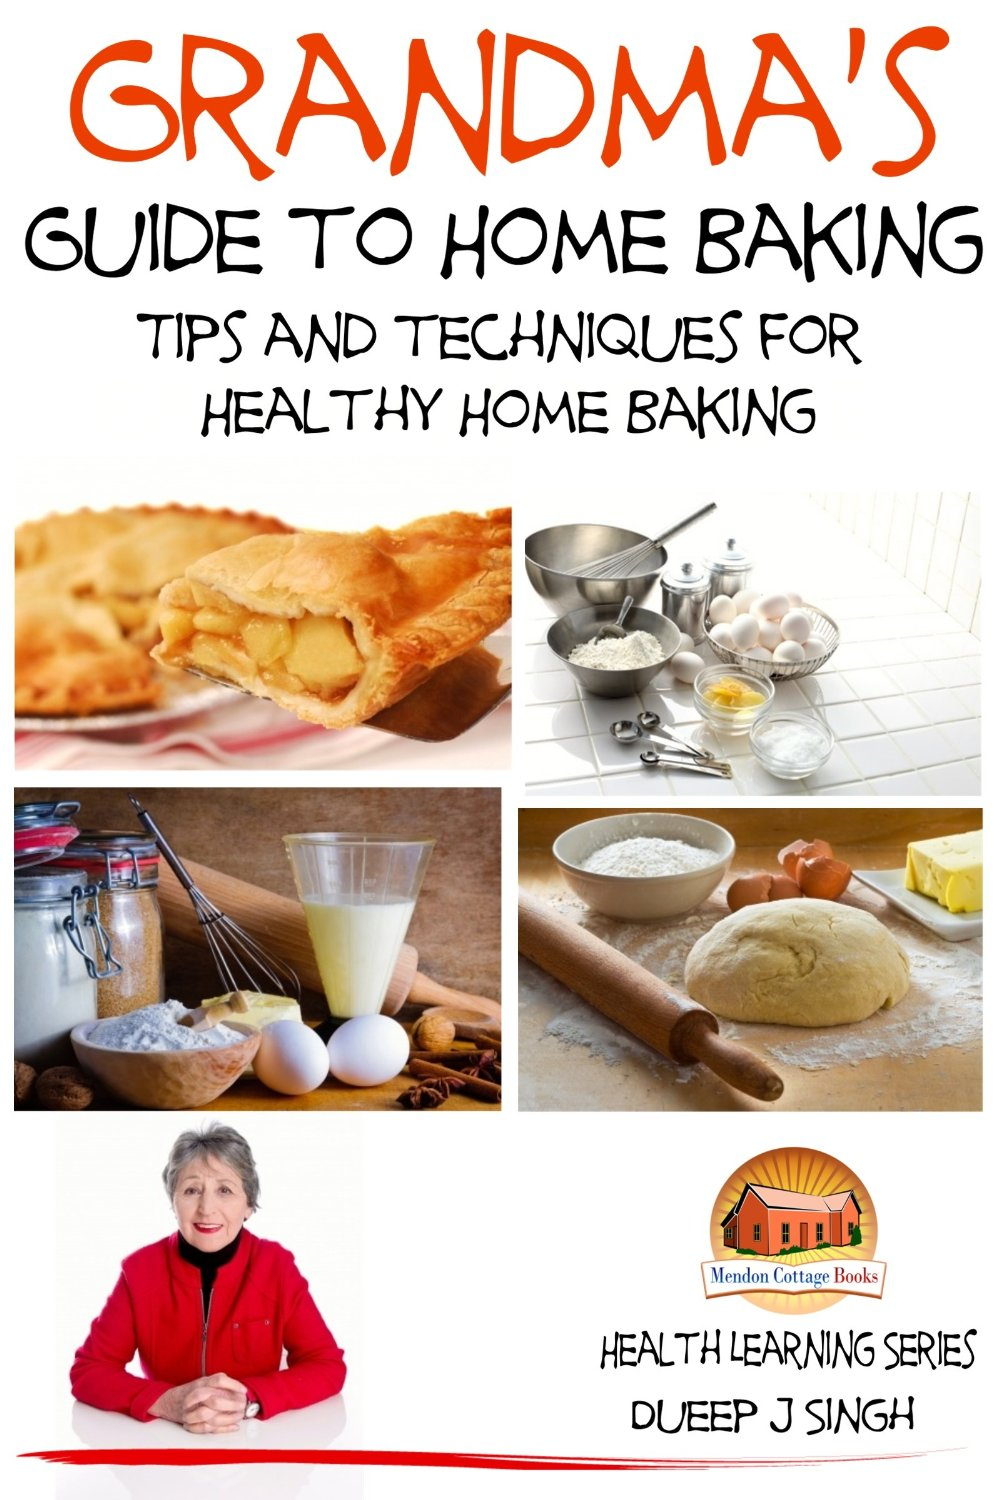 Grandma's Guide to Home Baking Tips and techniques for Healthy Home Baking free download